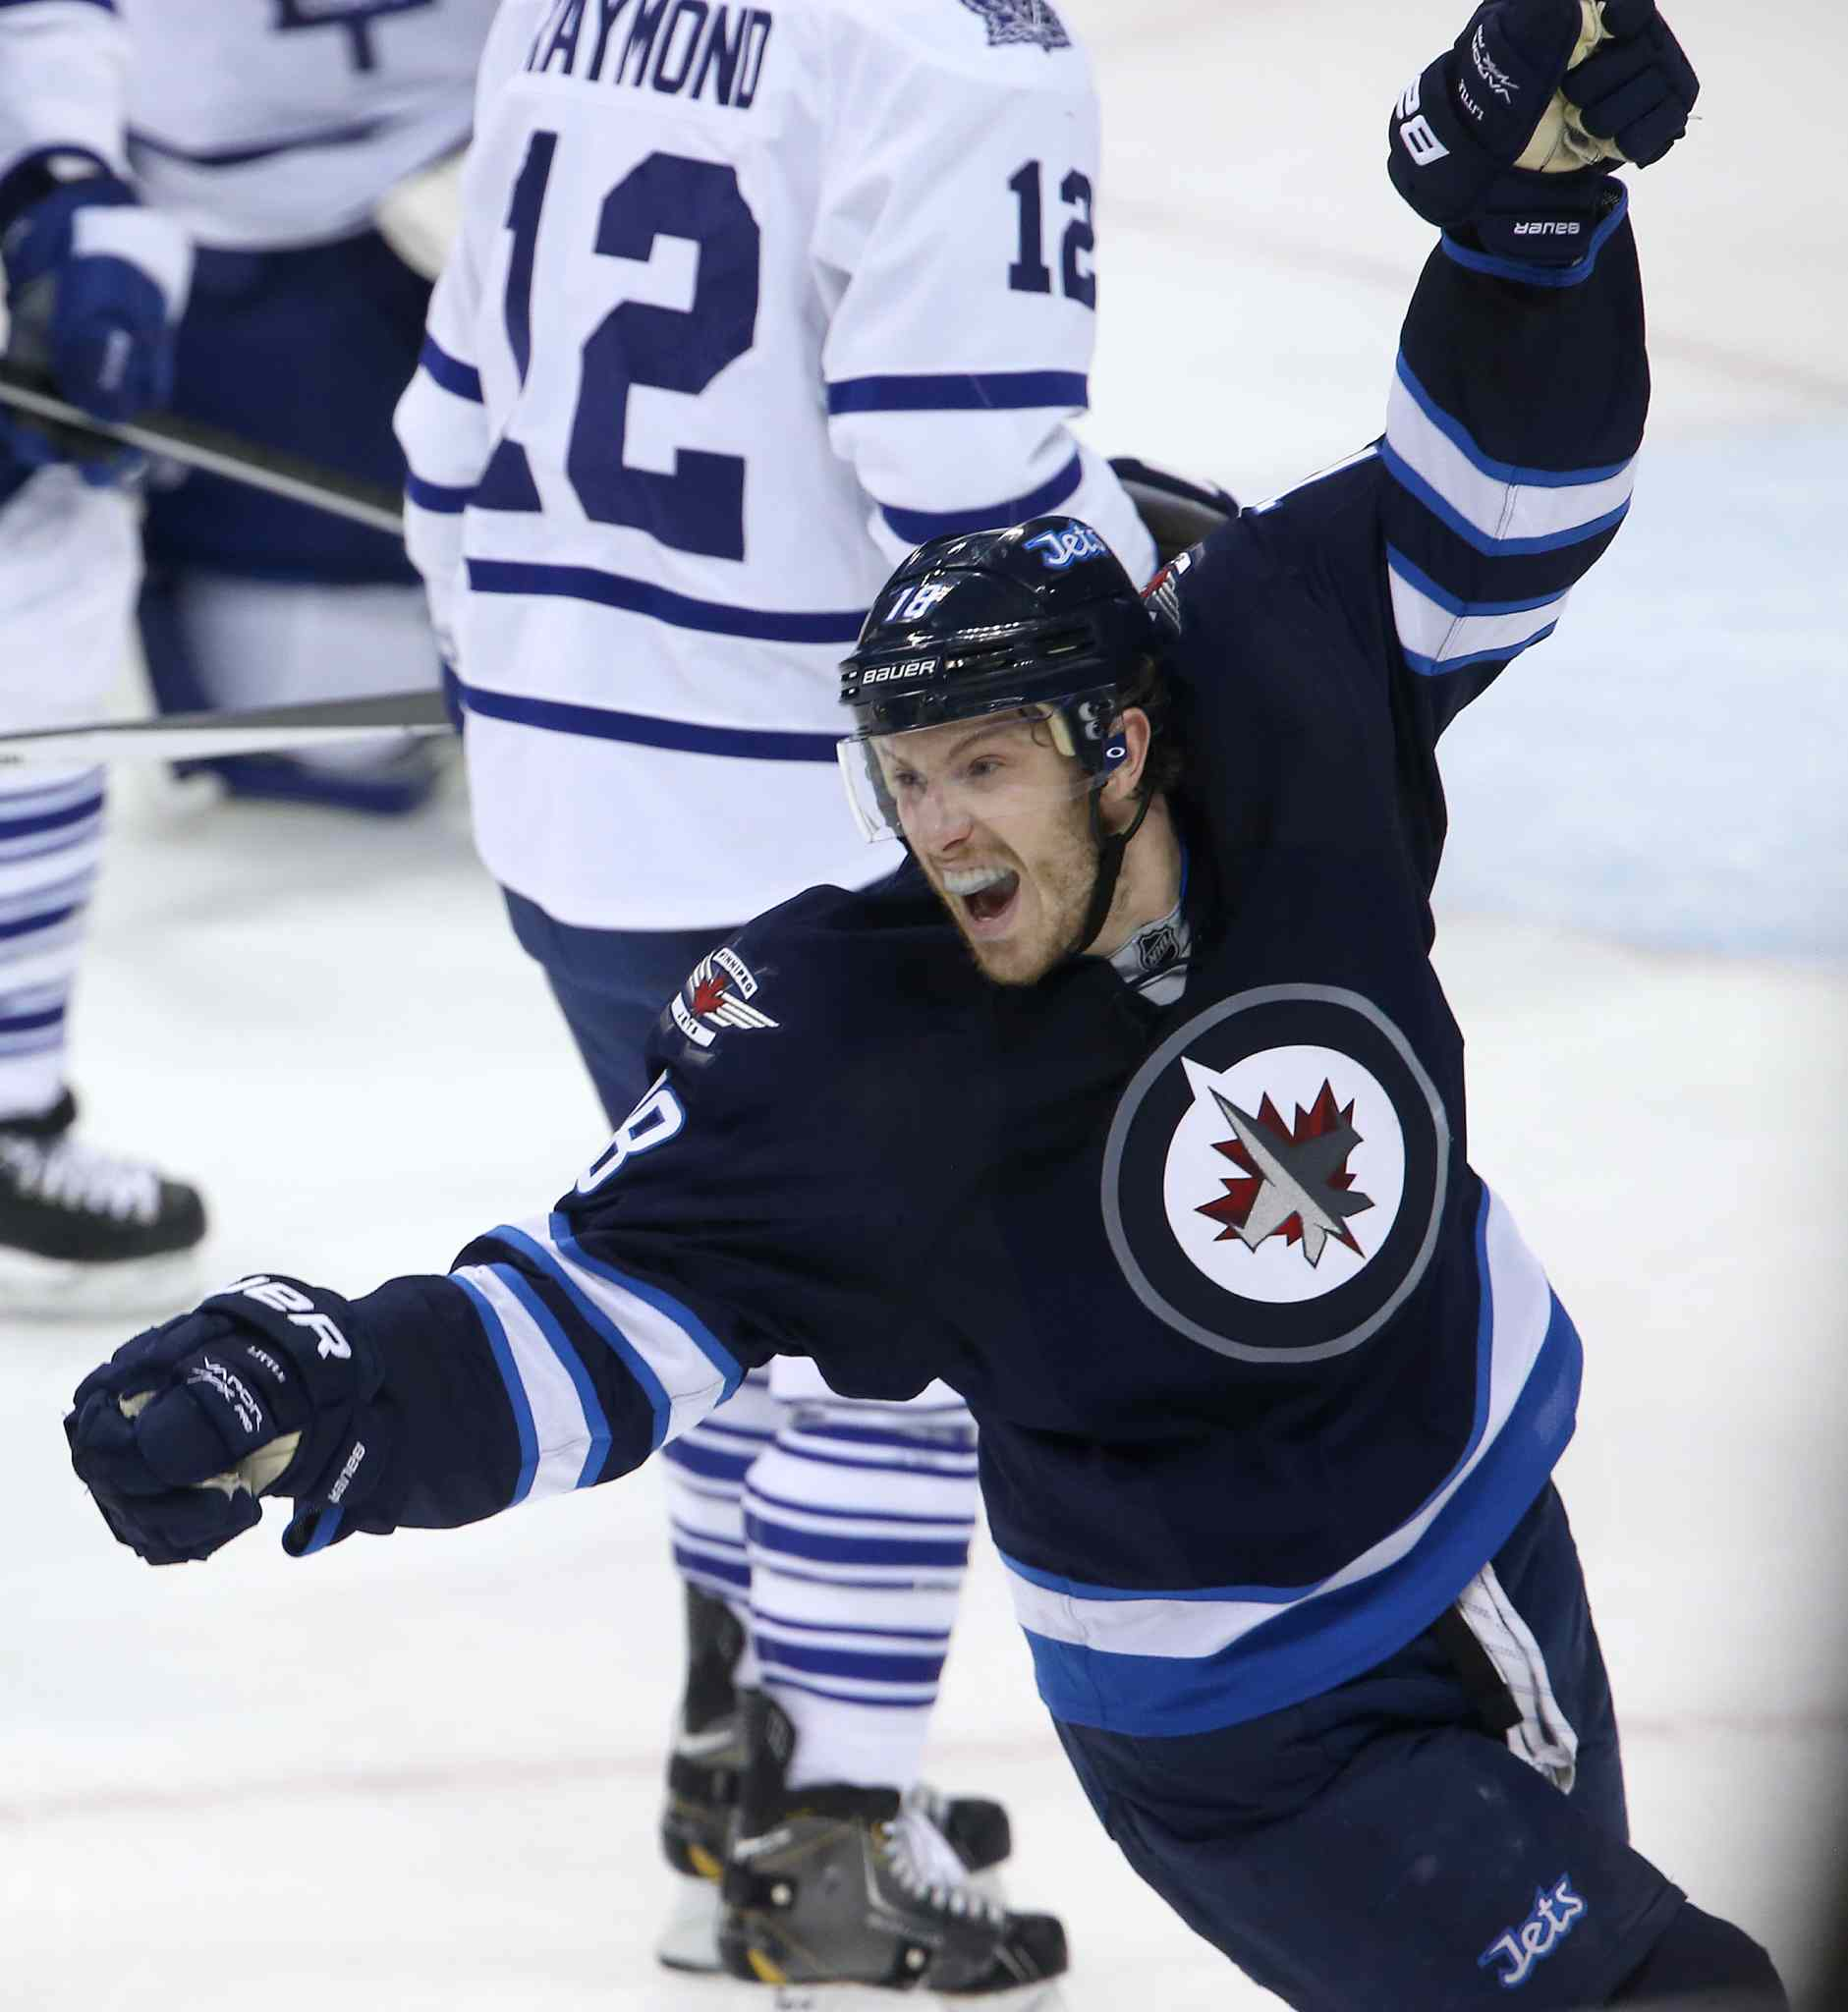 Winnipeg Jets' Bryan Little (18) celebrates after Dustin Byfuglien (33) scored to beat the Toronto Maple Leafs' during overtime on Saturday.